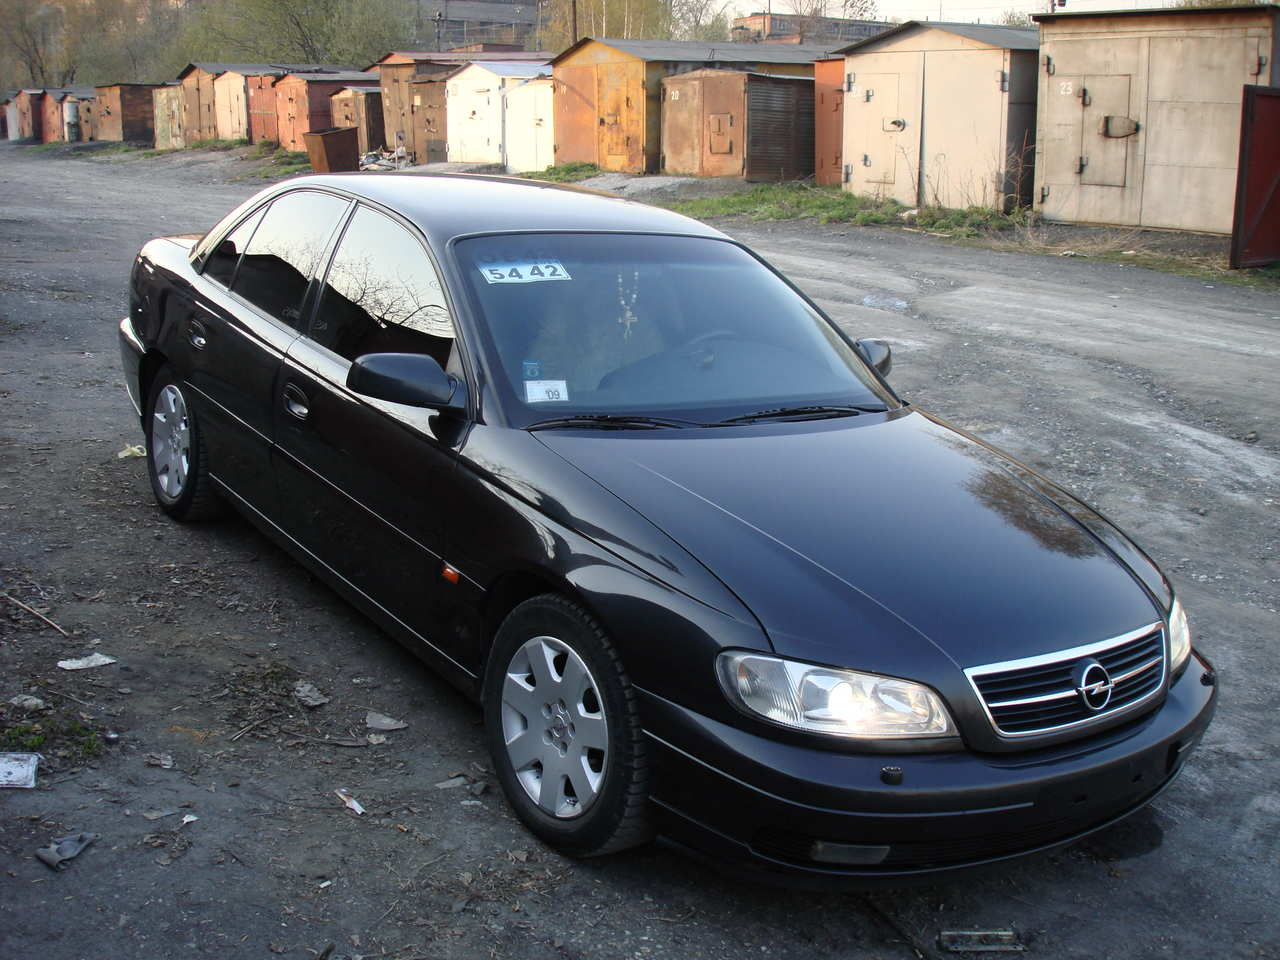 used 2000 opel omega photos 2200cc gasoline fr or rr. Black Bedroom Furniture Sets. Home Design Ideas